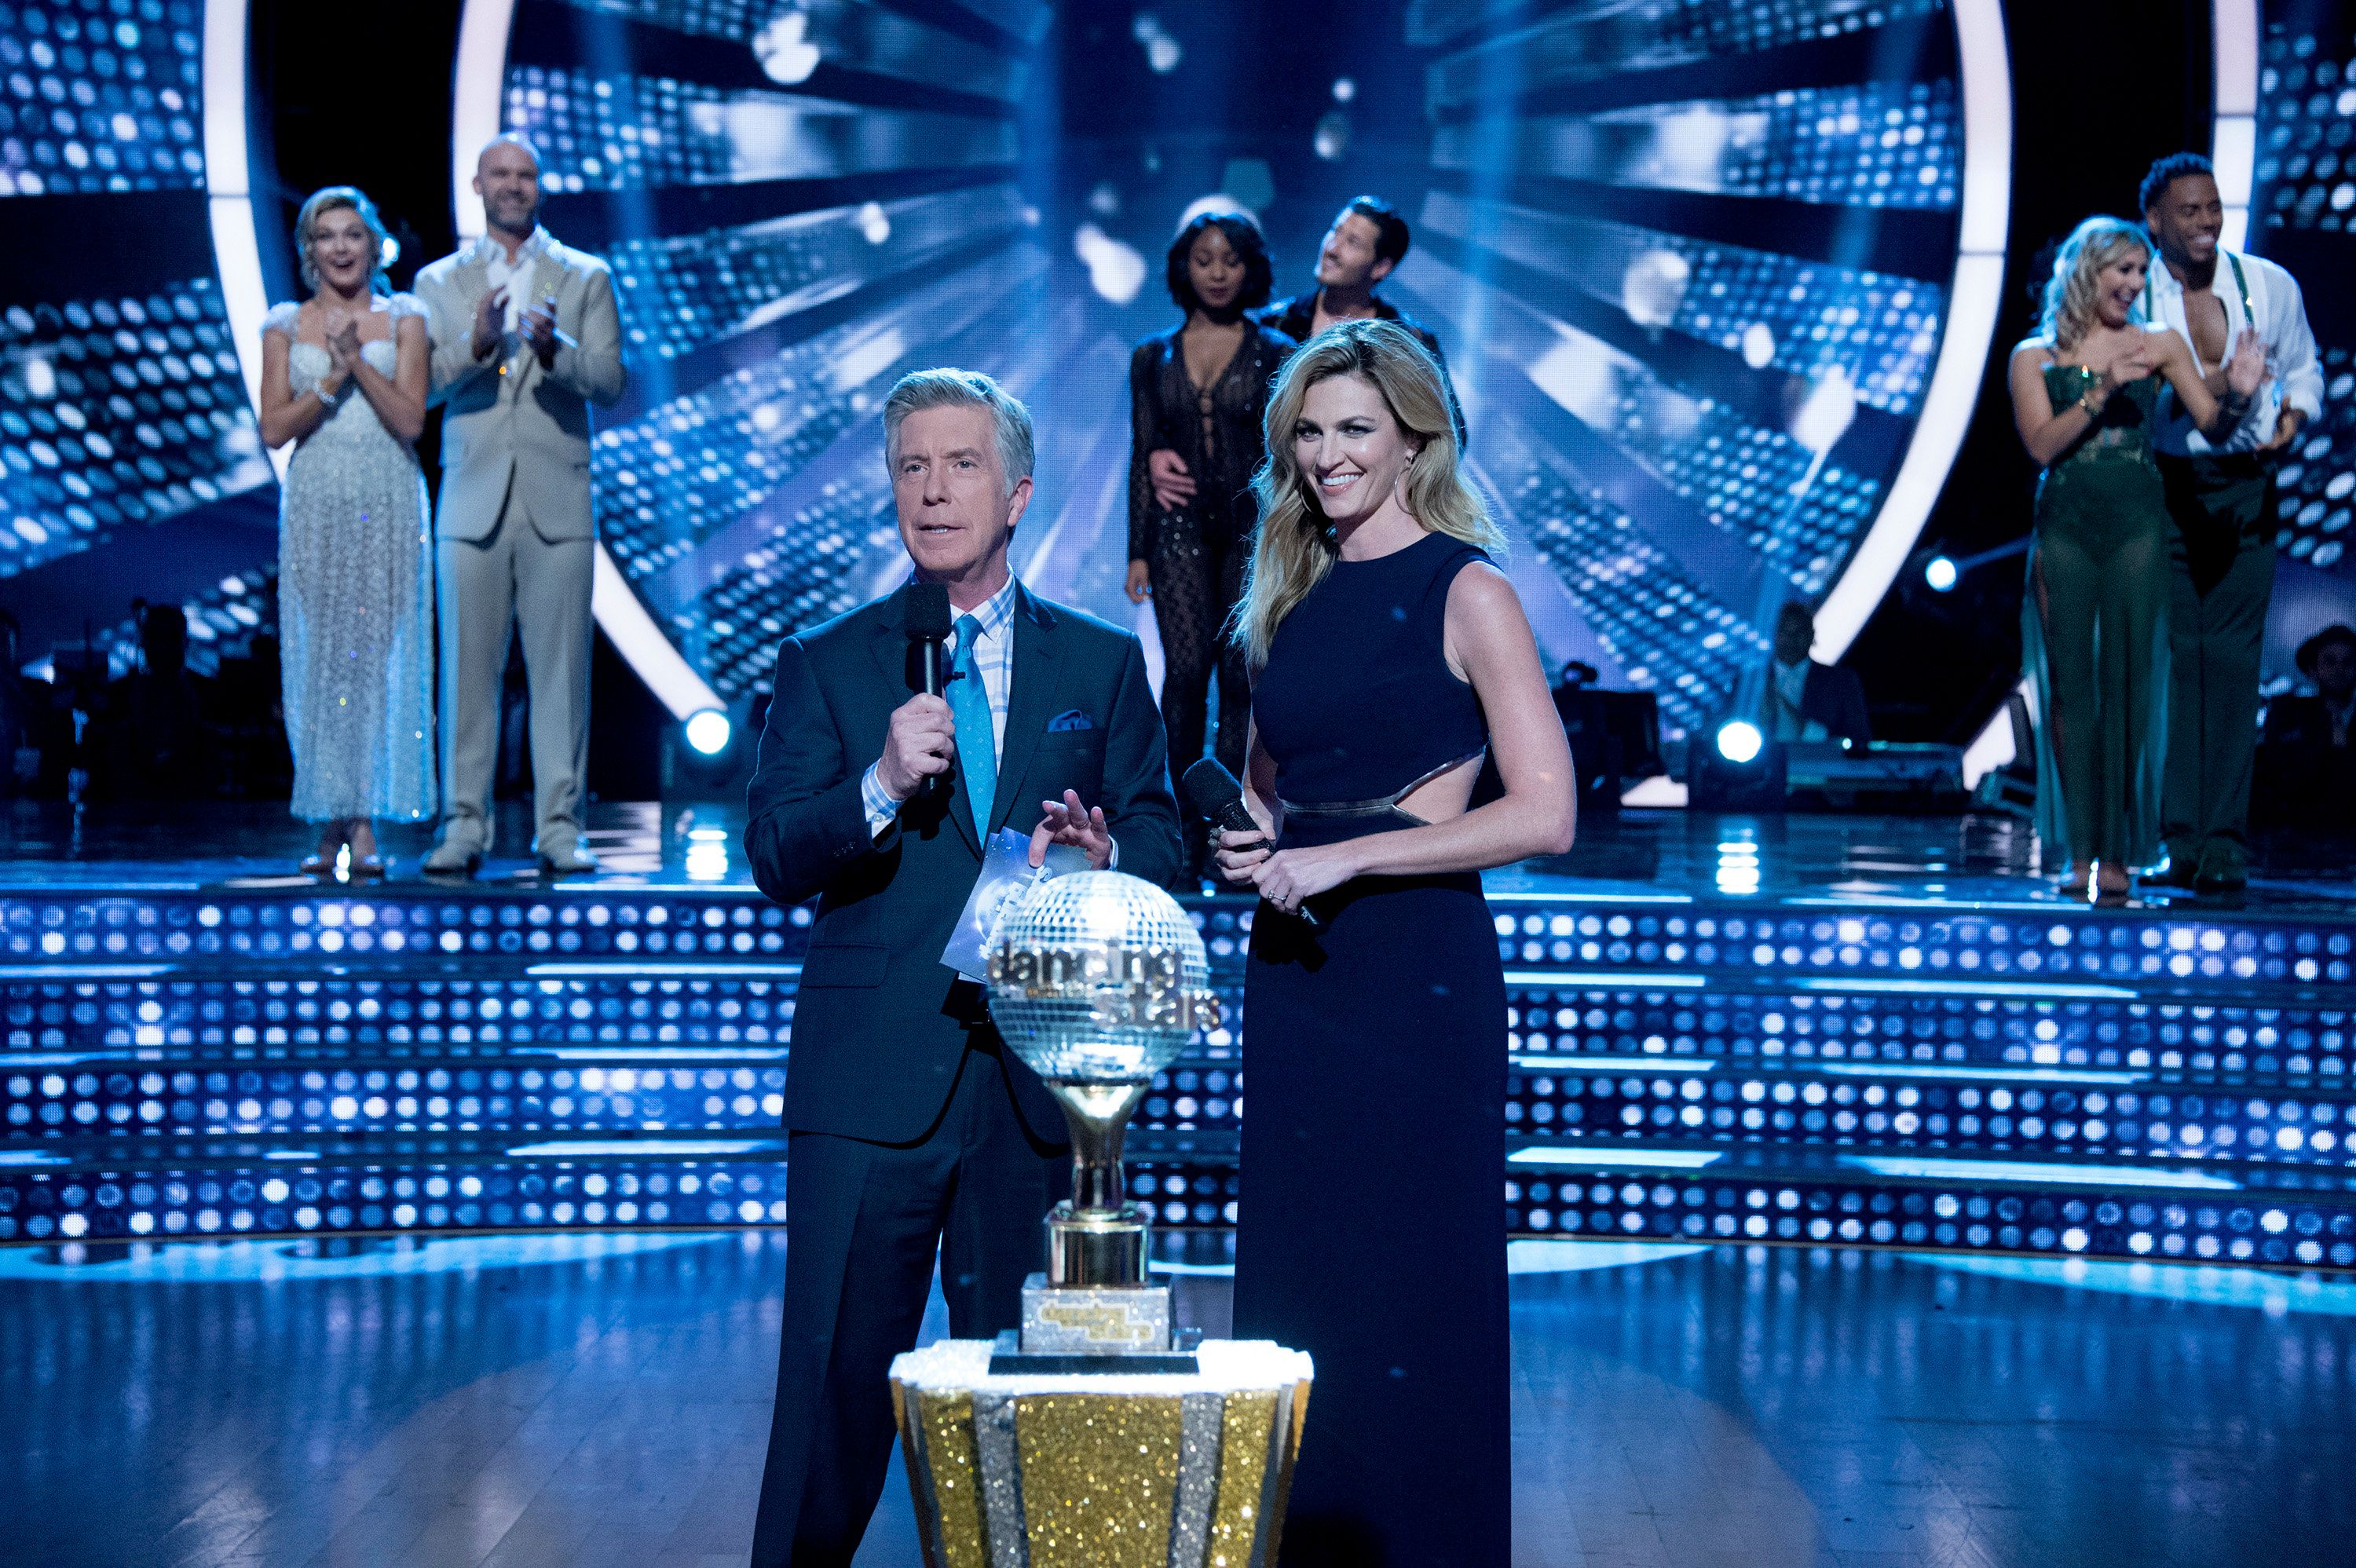 DANCING WITH THE STARS - 'Episodes 2410' - After weeks of stunning competitive dancing, the final three couples advance to the finals of 'Dancing with the Stars,' live, MONDAY, MAY 22 (8:00-9:01 p.m. EDT), on the ABC Television Network. (Eric McCandless / ABC Via Getty Images) TOM BERGERON, ERIN ANDREWS